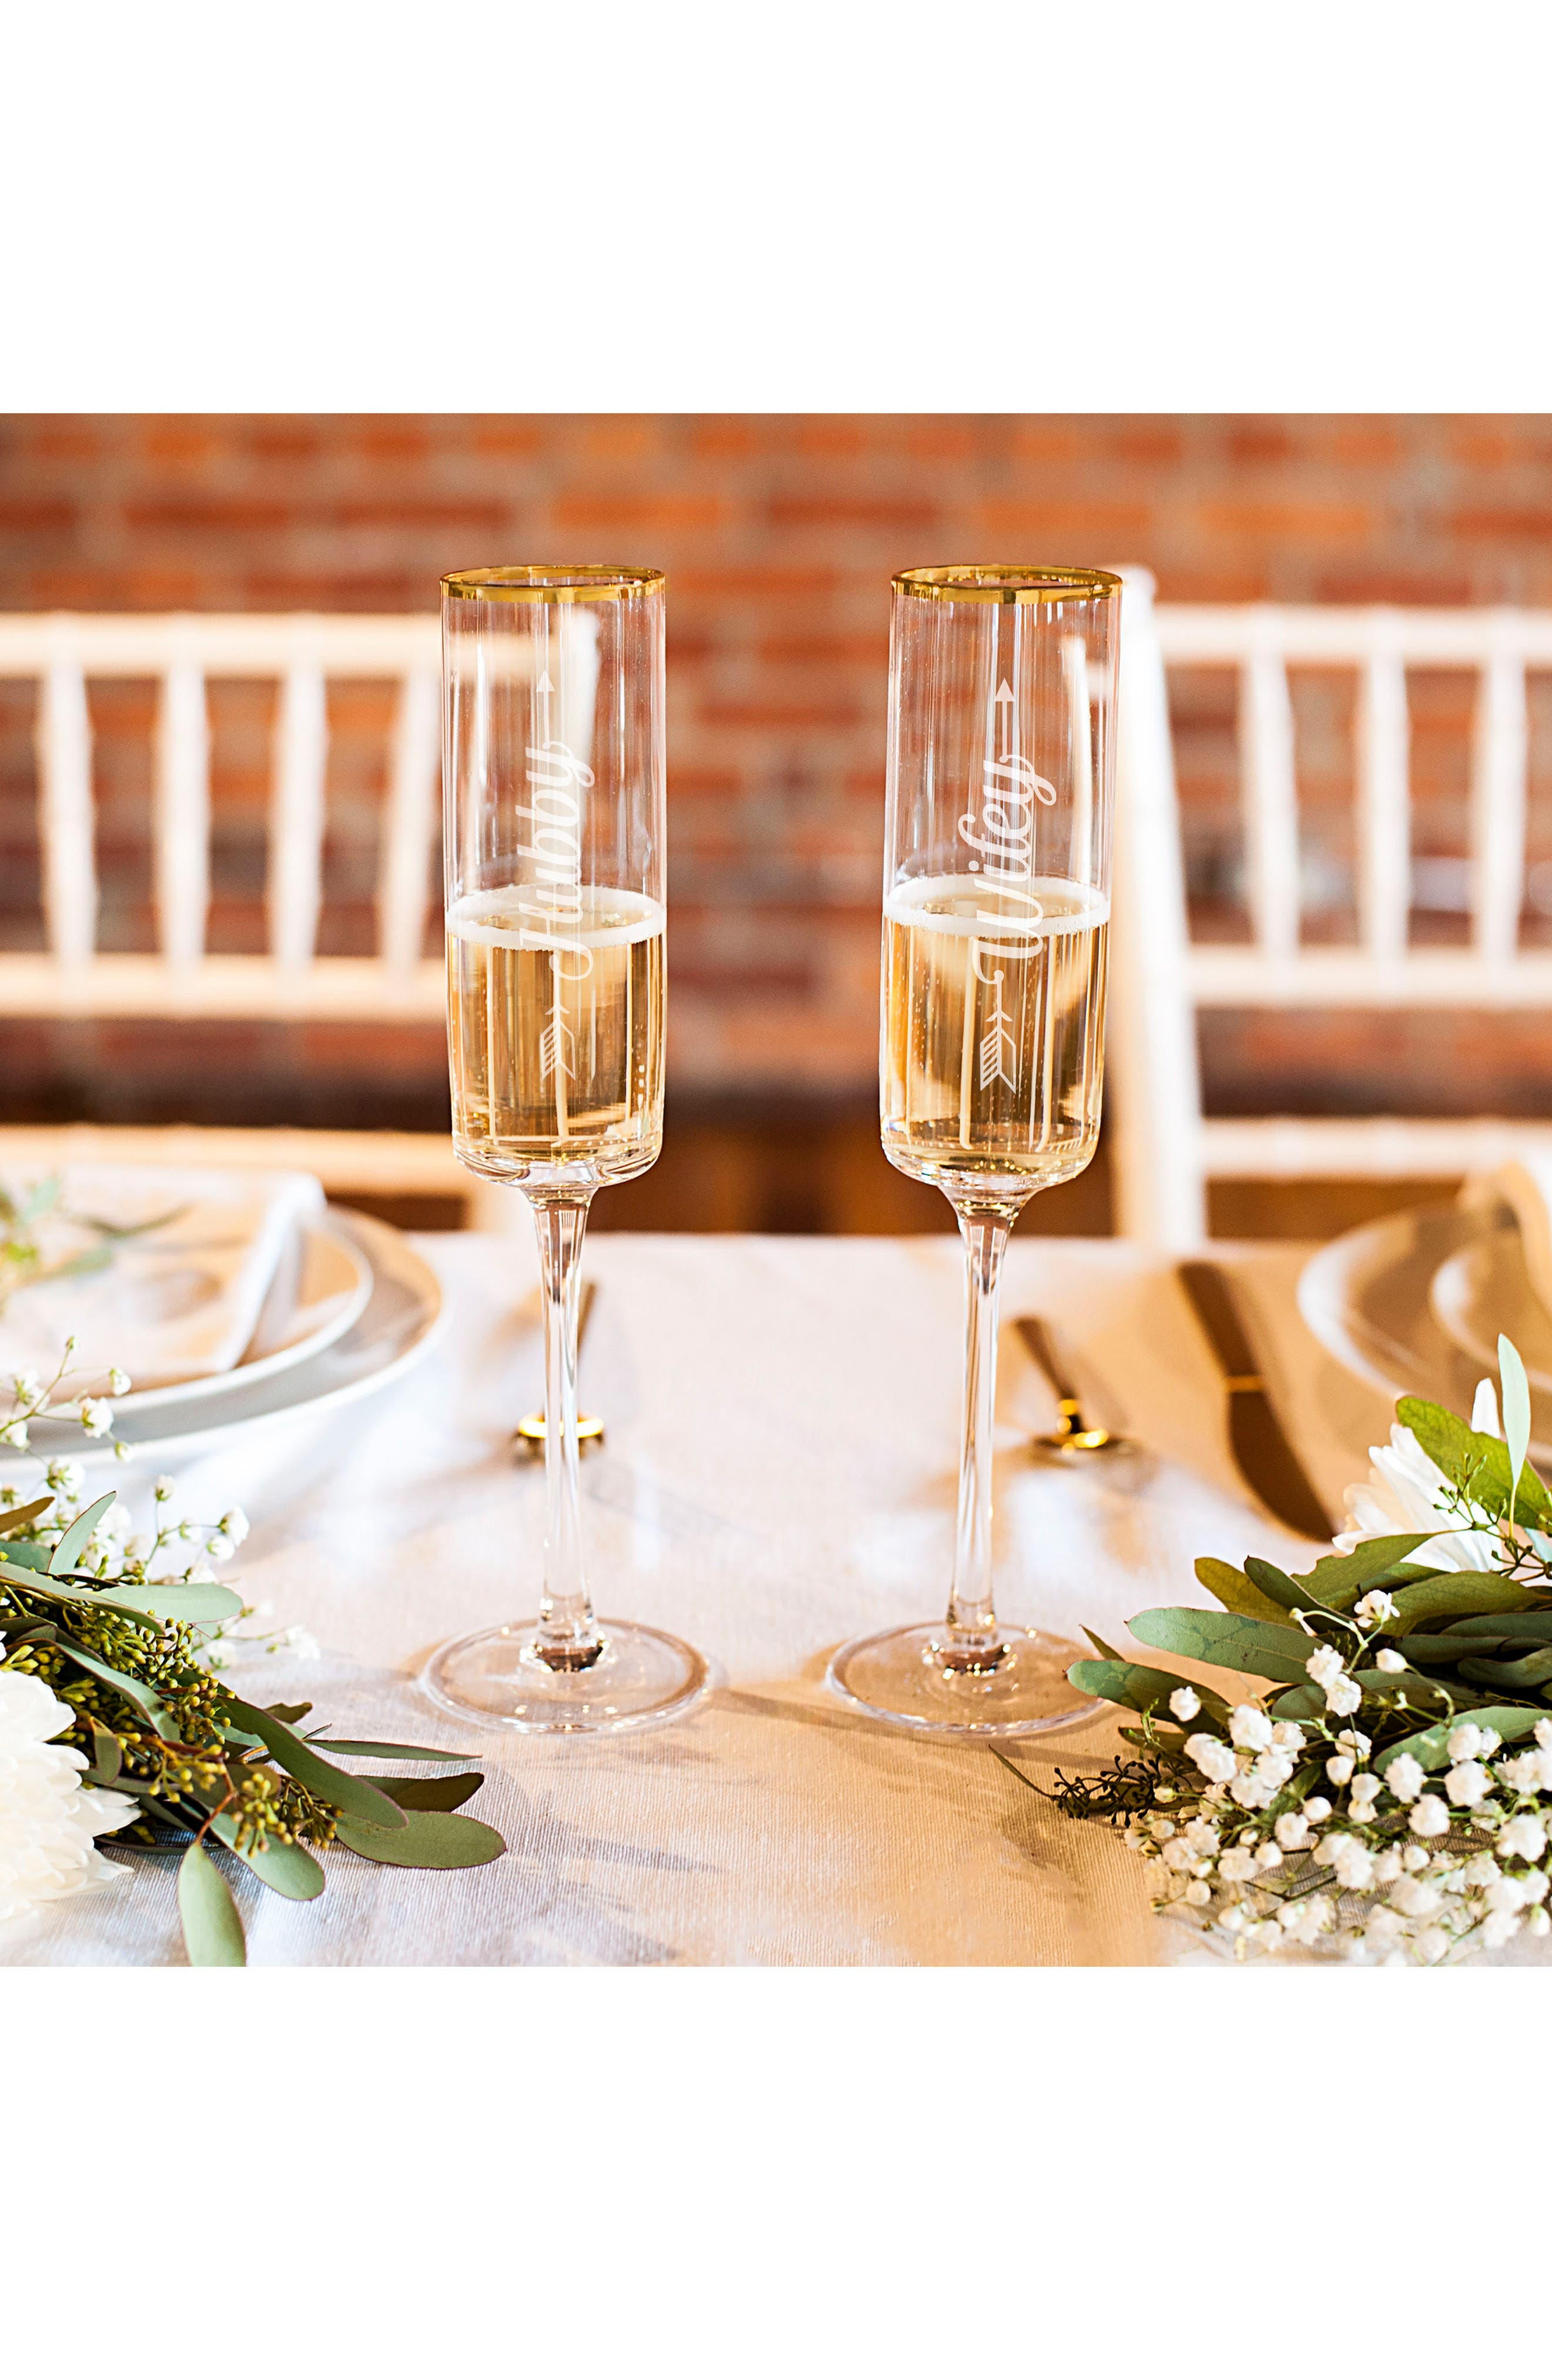 Hubby/Wifey Set of 2 Champagne Flutes,                             Alternate thumbnail 6, color,                             710